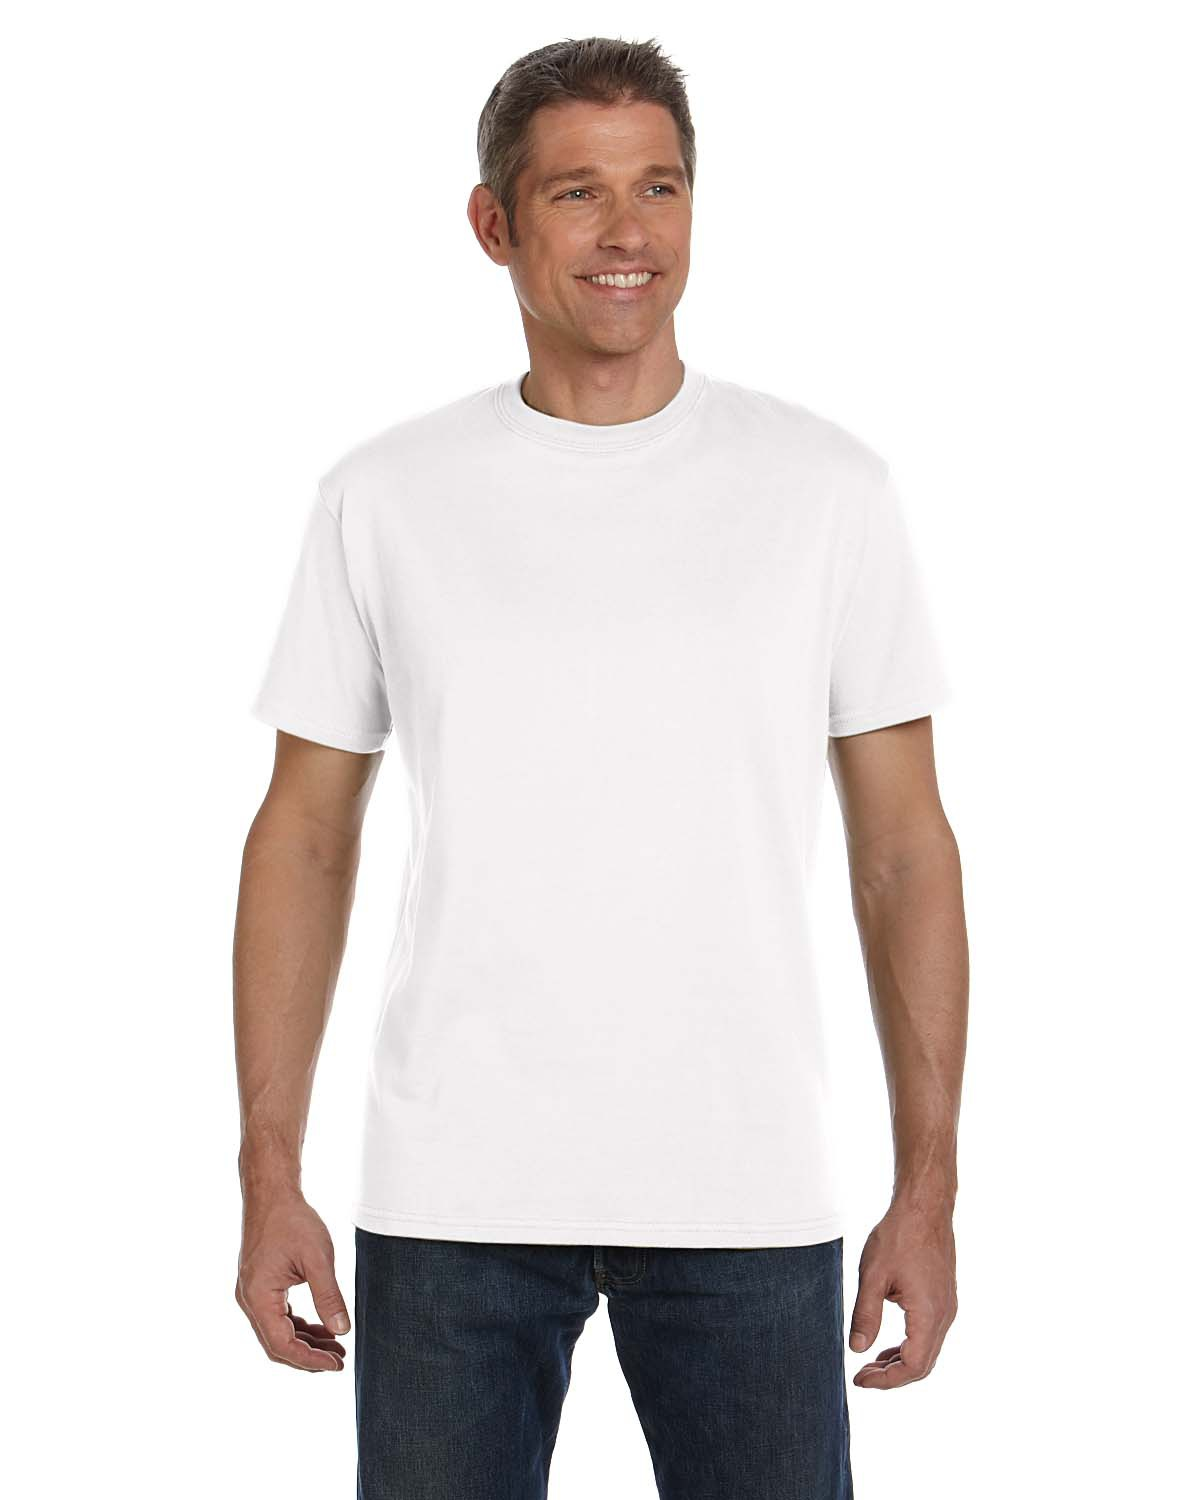 Men S Suits On Pinterest: Certified Organic Cotton Men's Classic Short Sleeve T